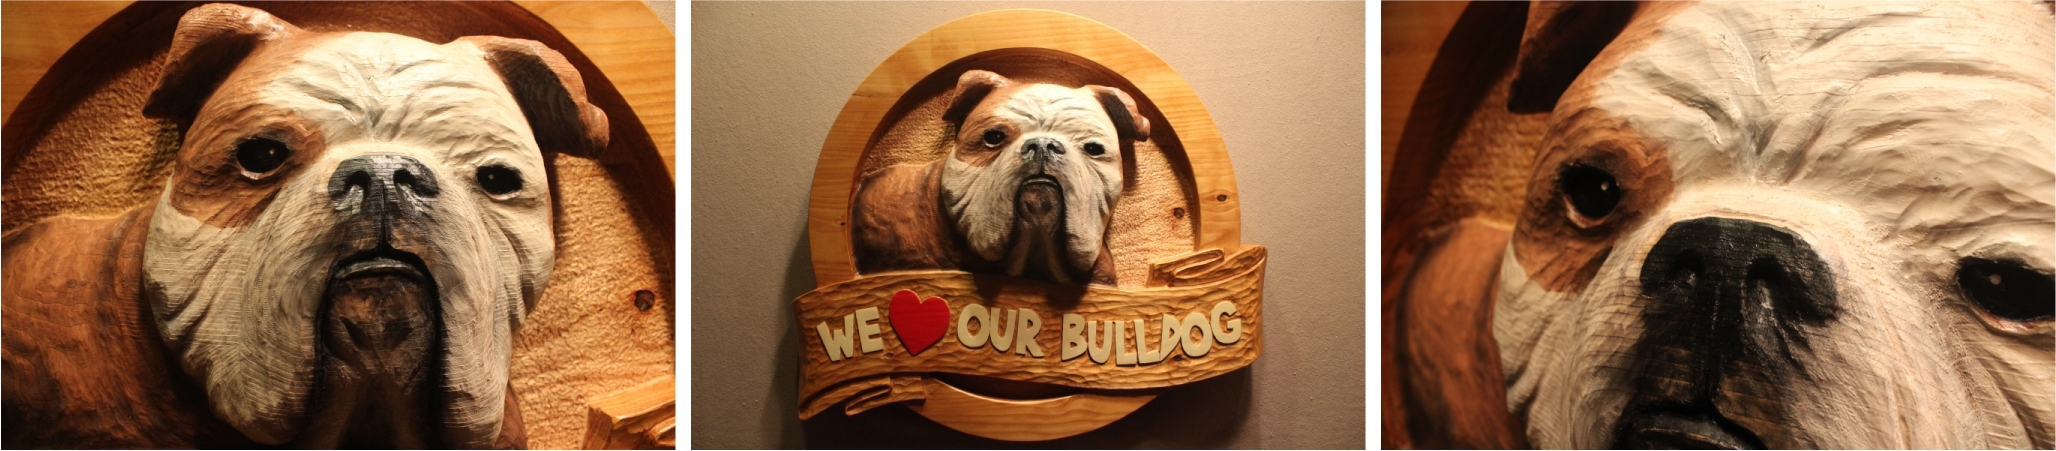 Custom Carved Dog Signs by Fox Wood Signs